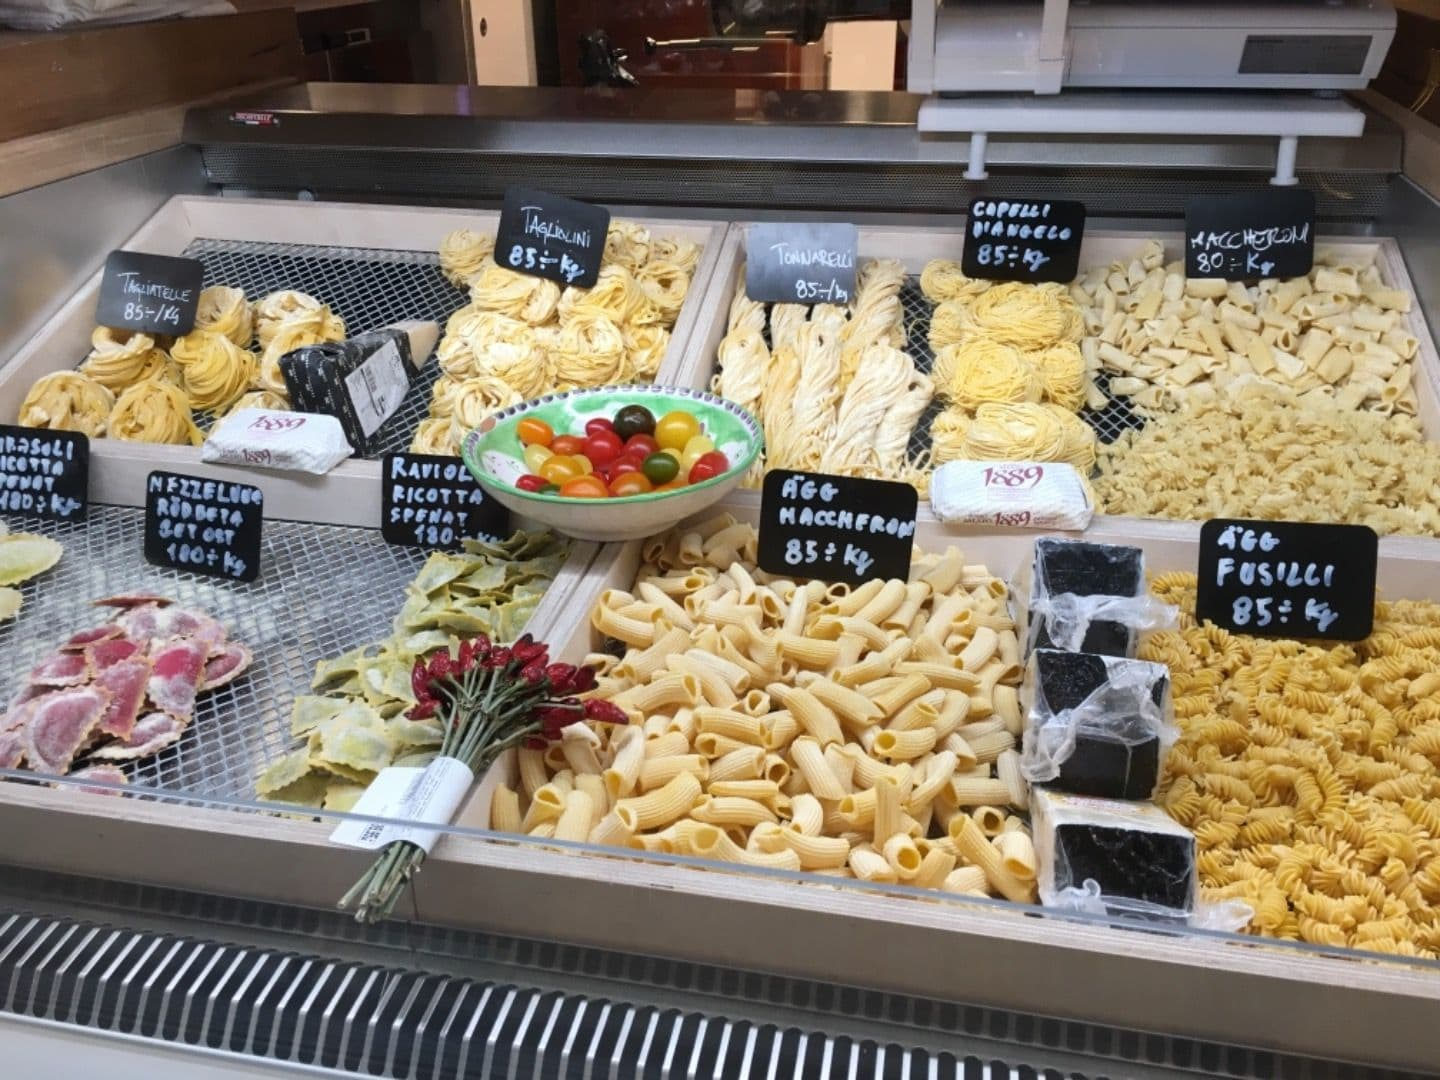 Photo from Eataly by Lisa S.